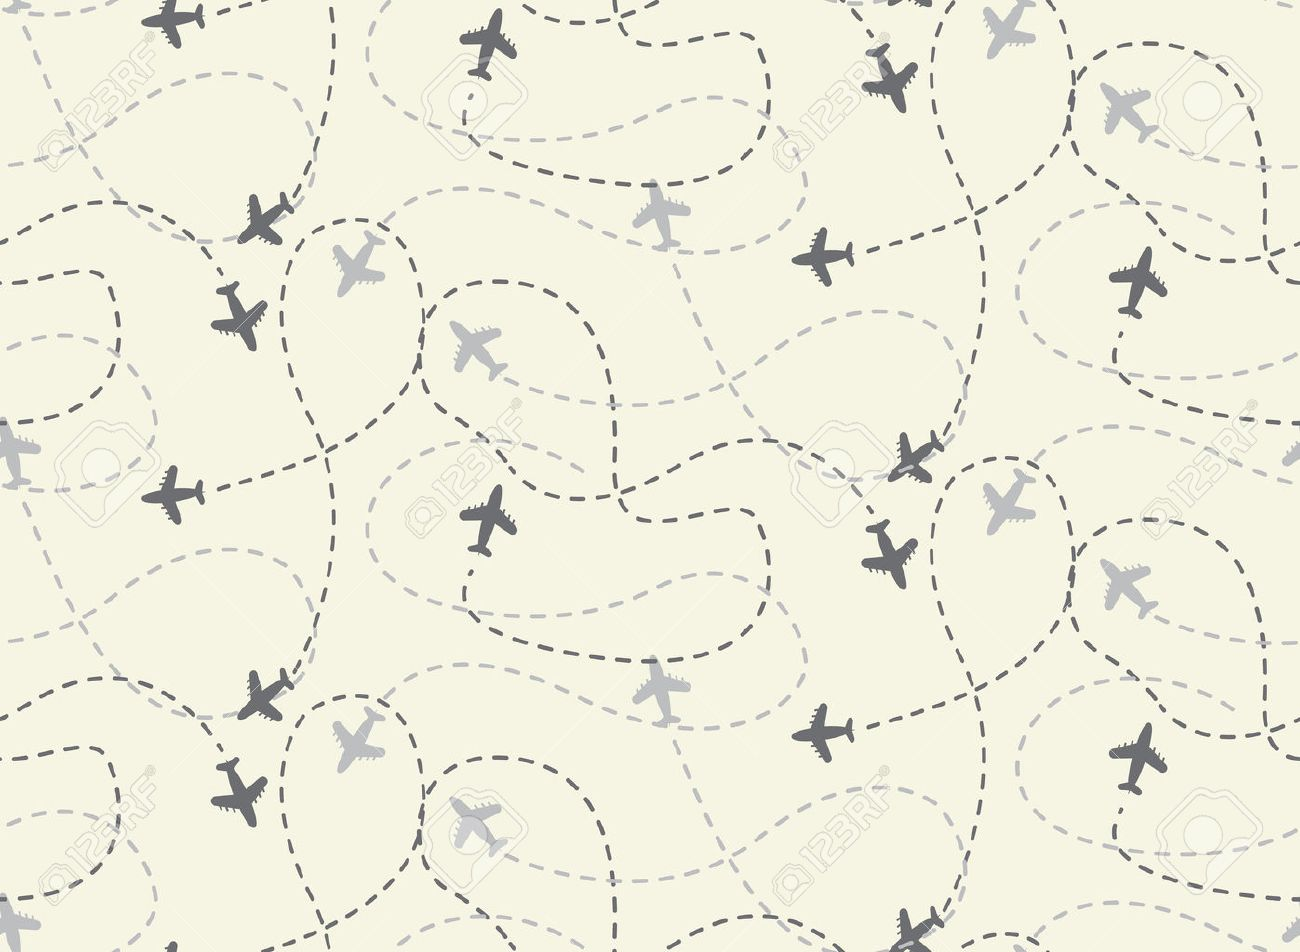 Travel Airplane Routes Seamless Pattern Vector Endless Texture Can Be Used For Wallpaper